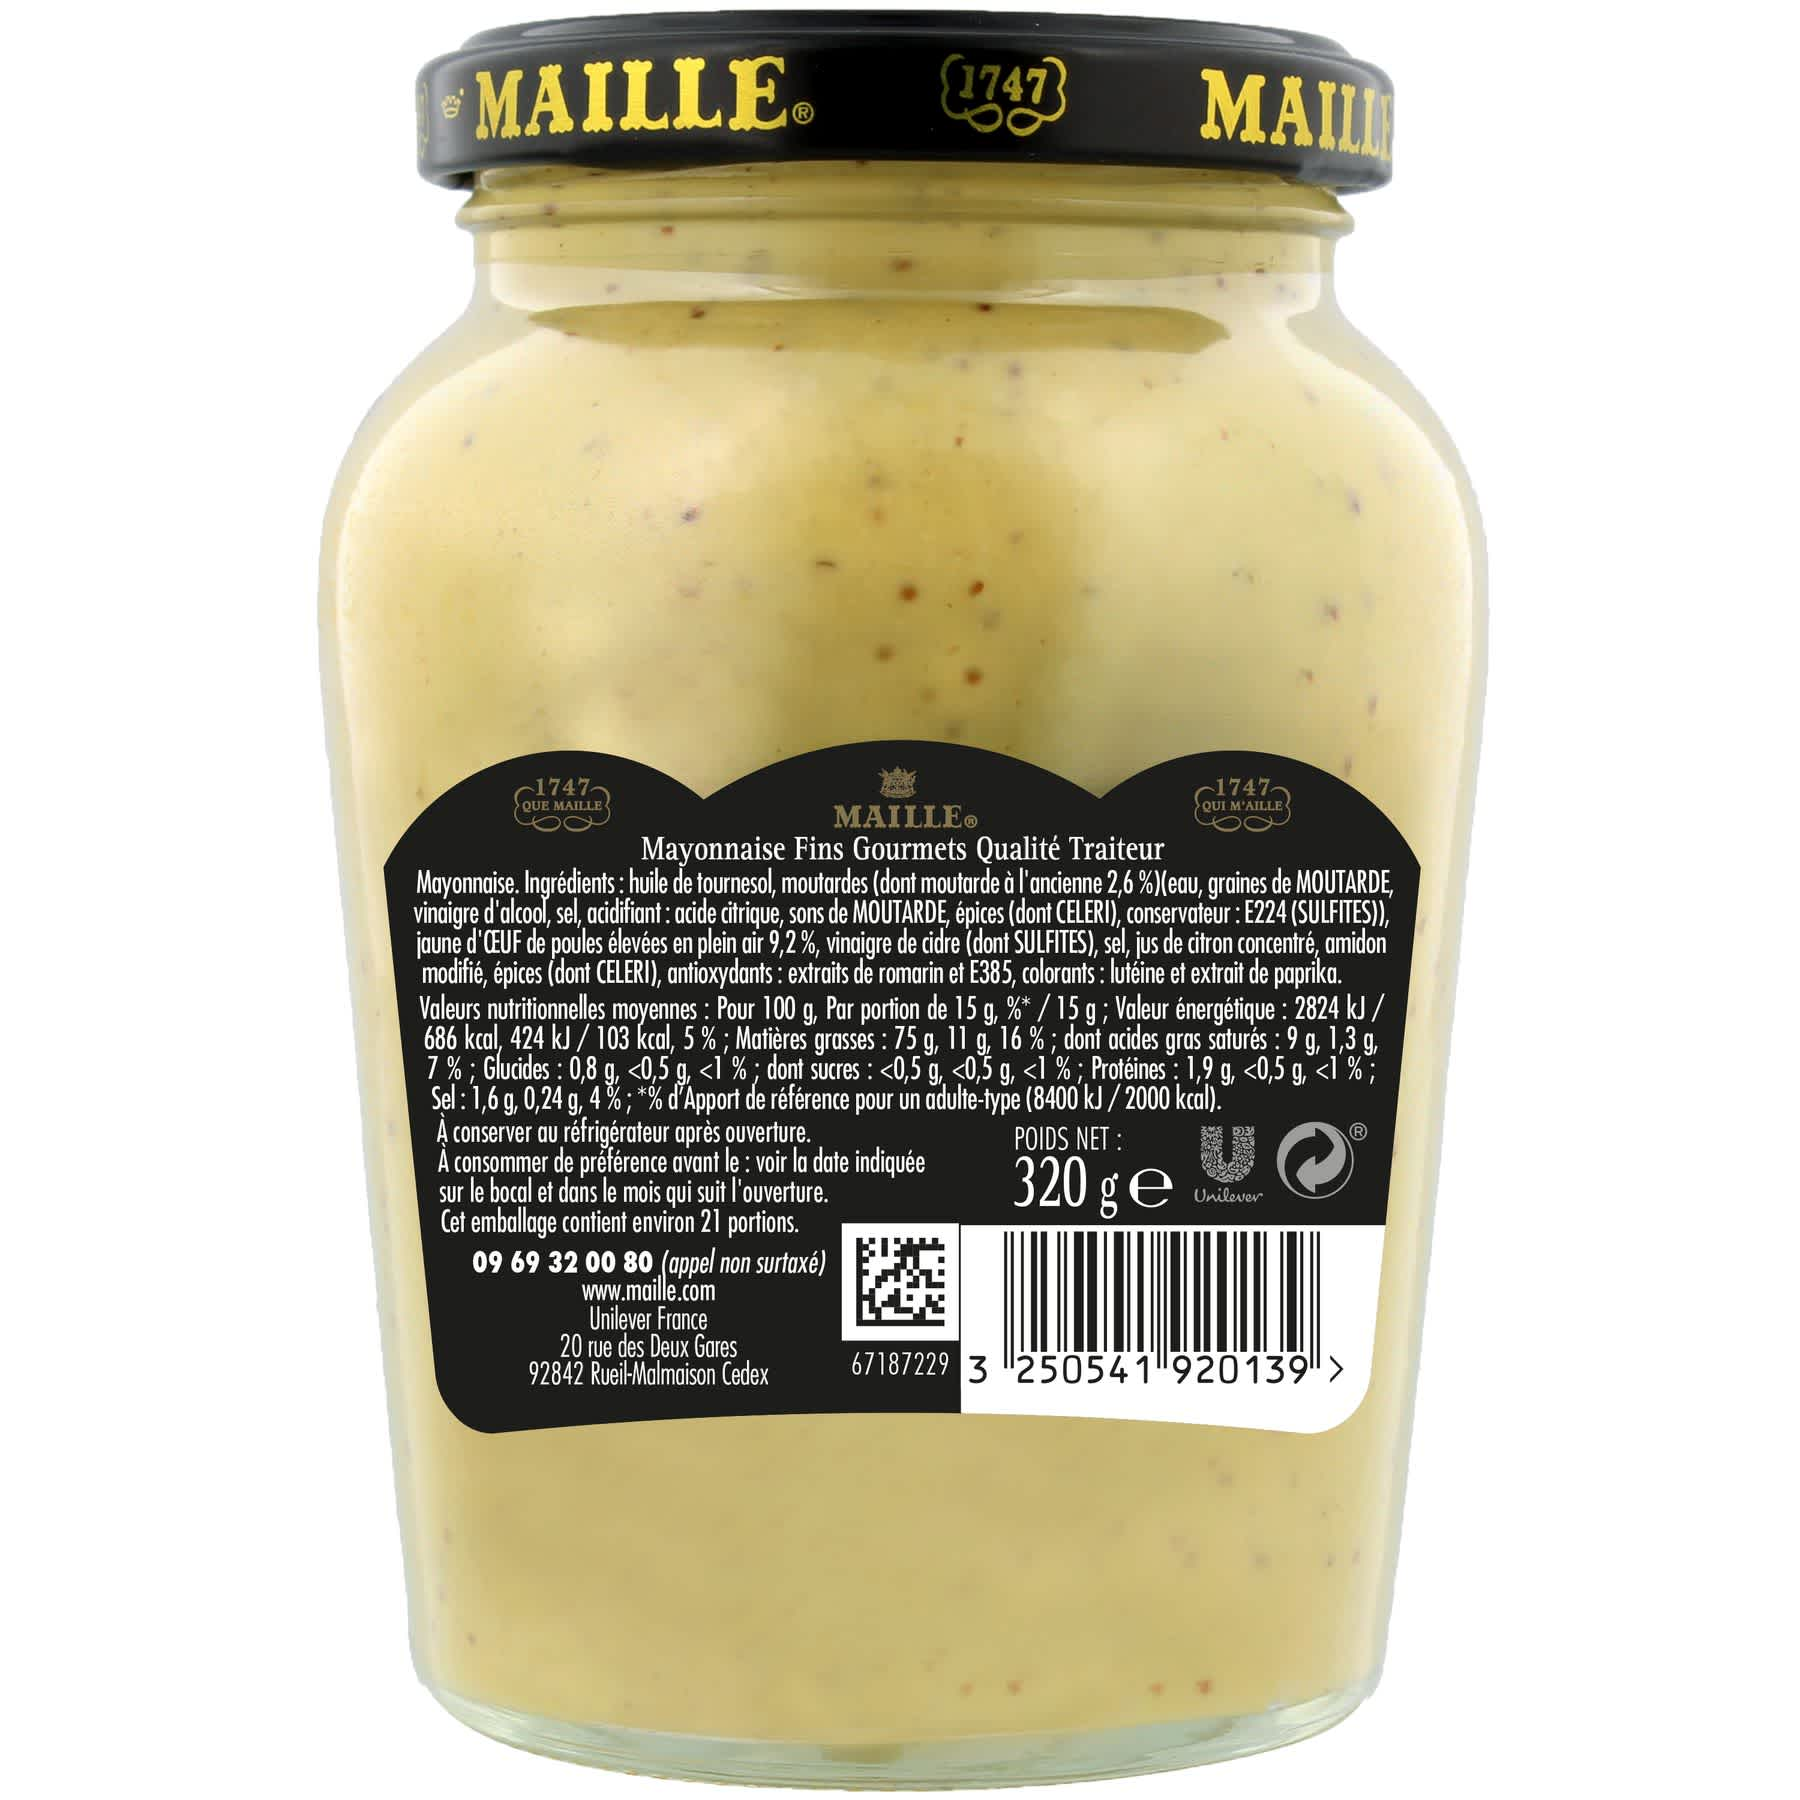 Maille - Mayonnaise Fins Gourmets Bocal 320 g, backend